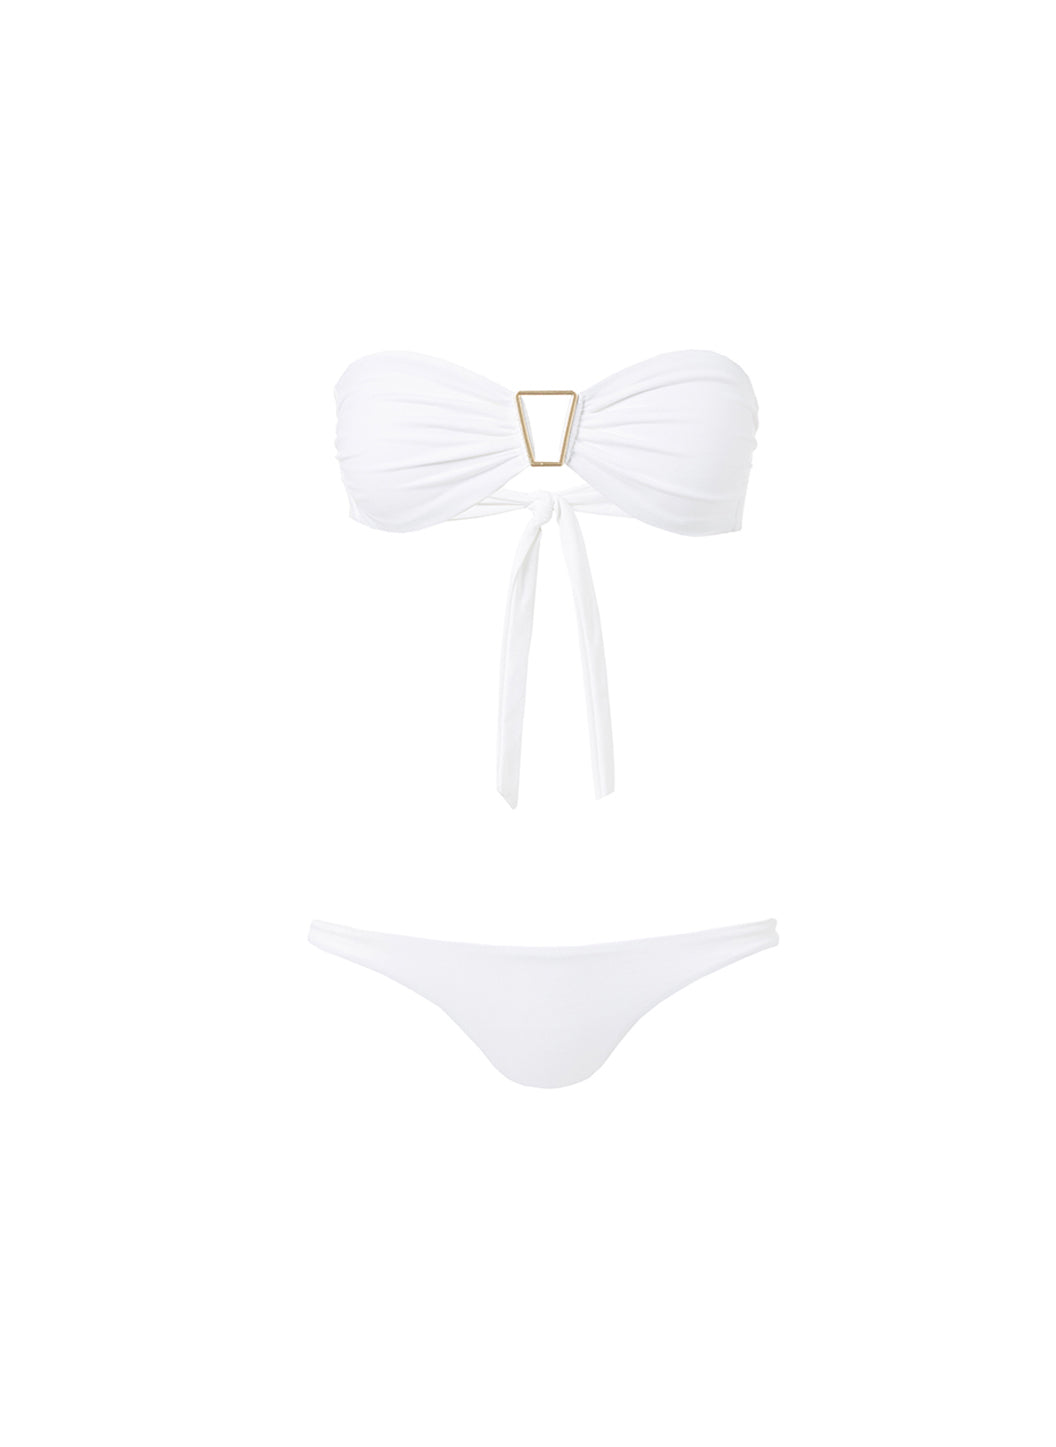 Barcelona White Bandeau Triangle Trim Bikini